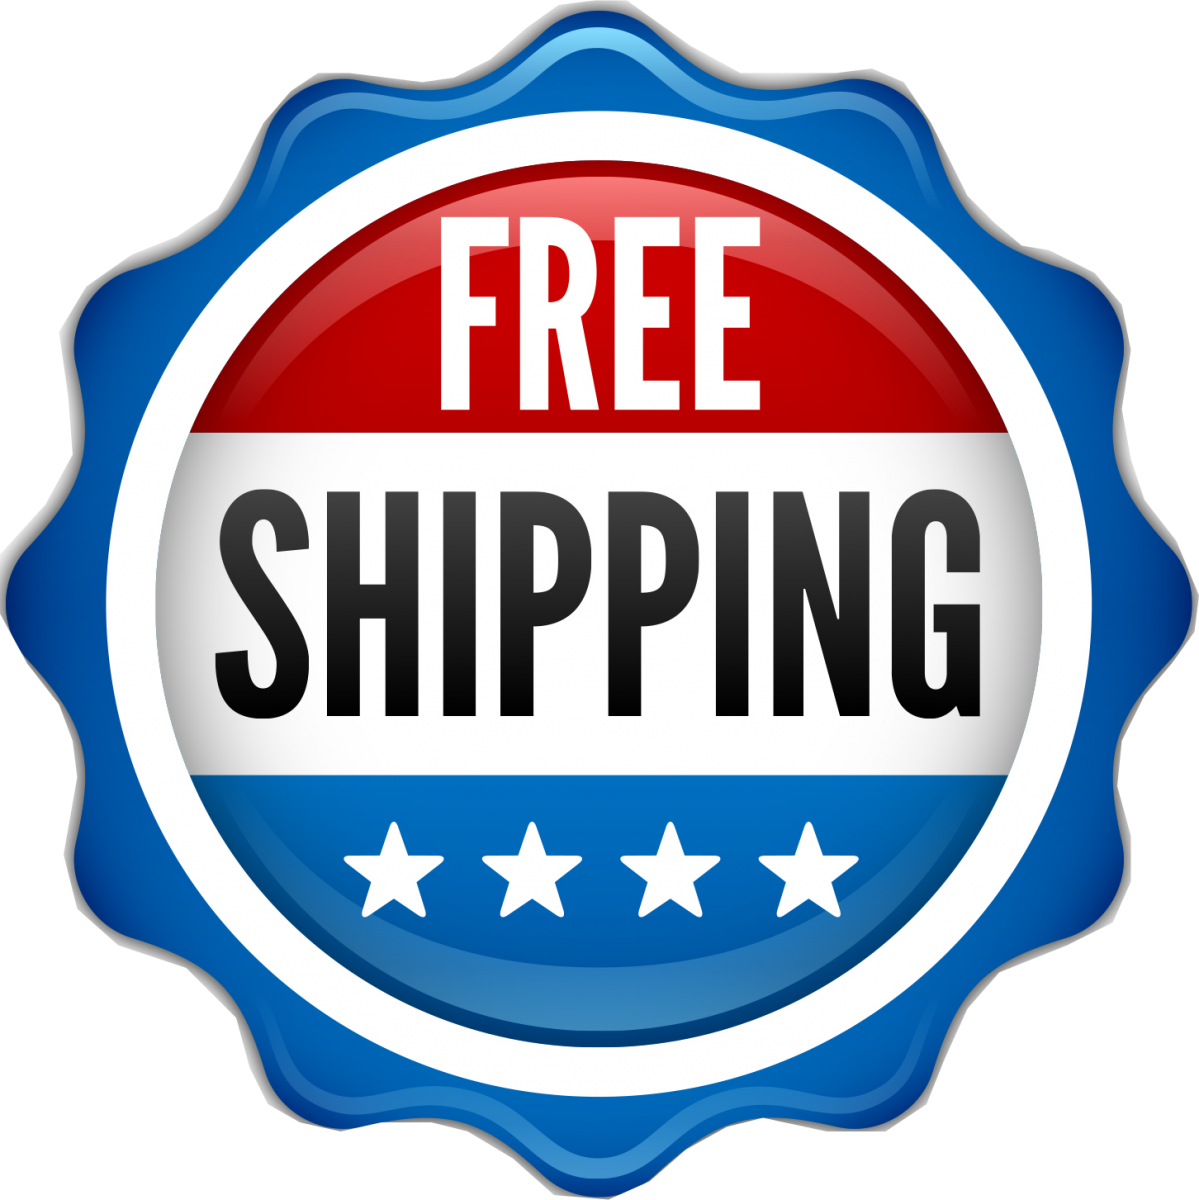 Free Shipping Circle Icon Transparent Background image #46927